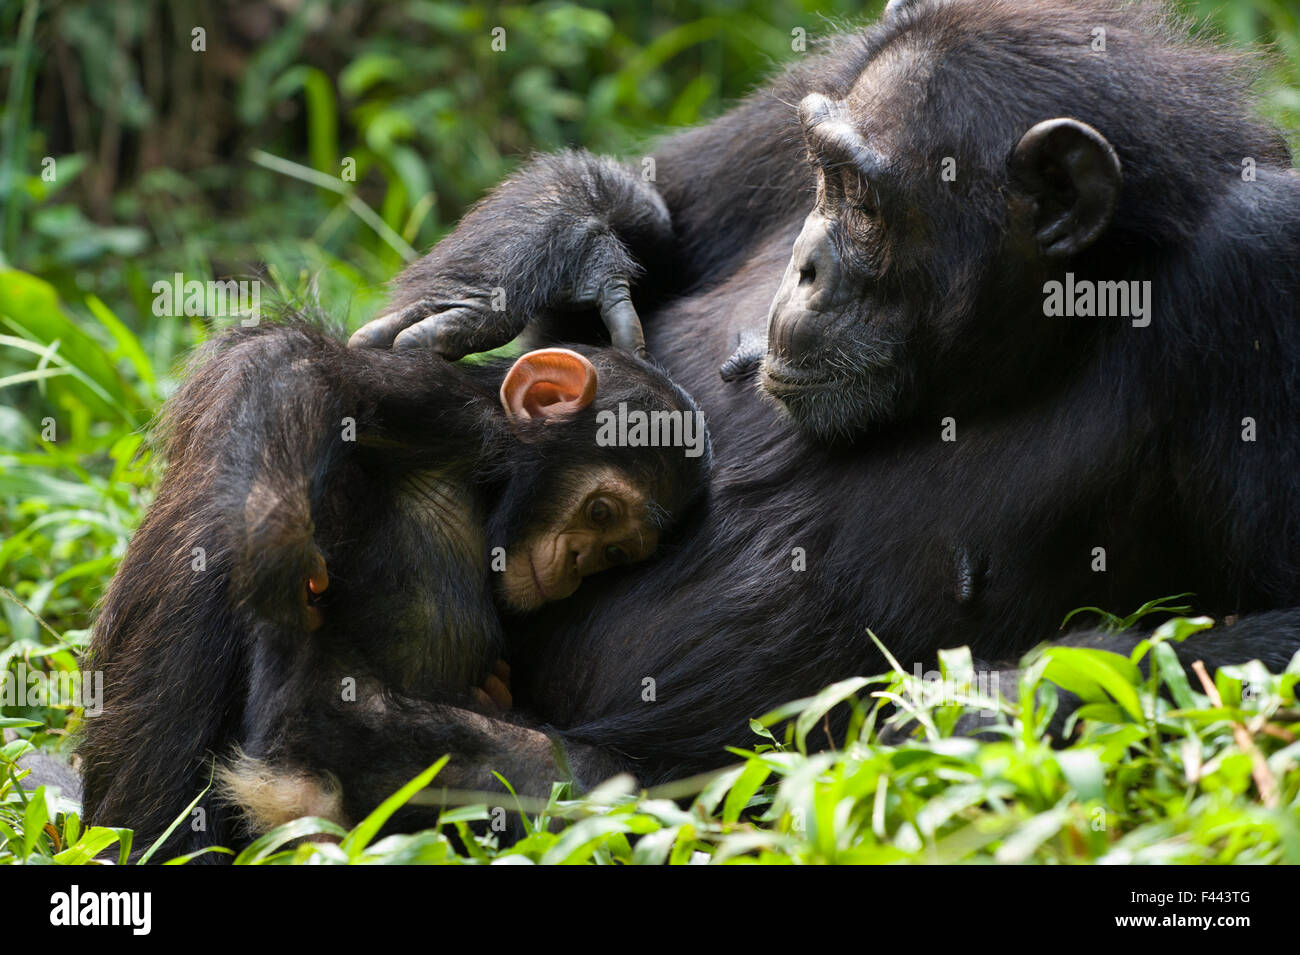 Chimpanzee (Pan troglodytes) mother and 4 month infant resting in tropical forest, Western Uganda - Stock Image